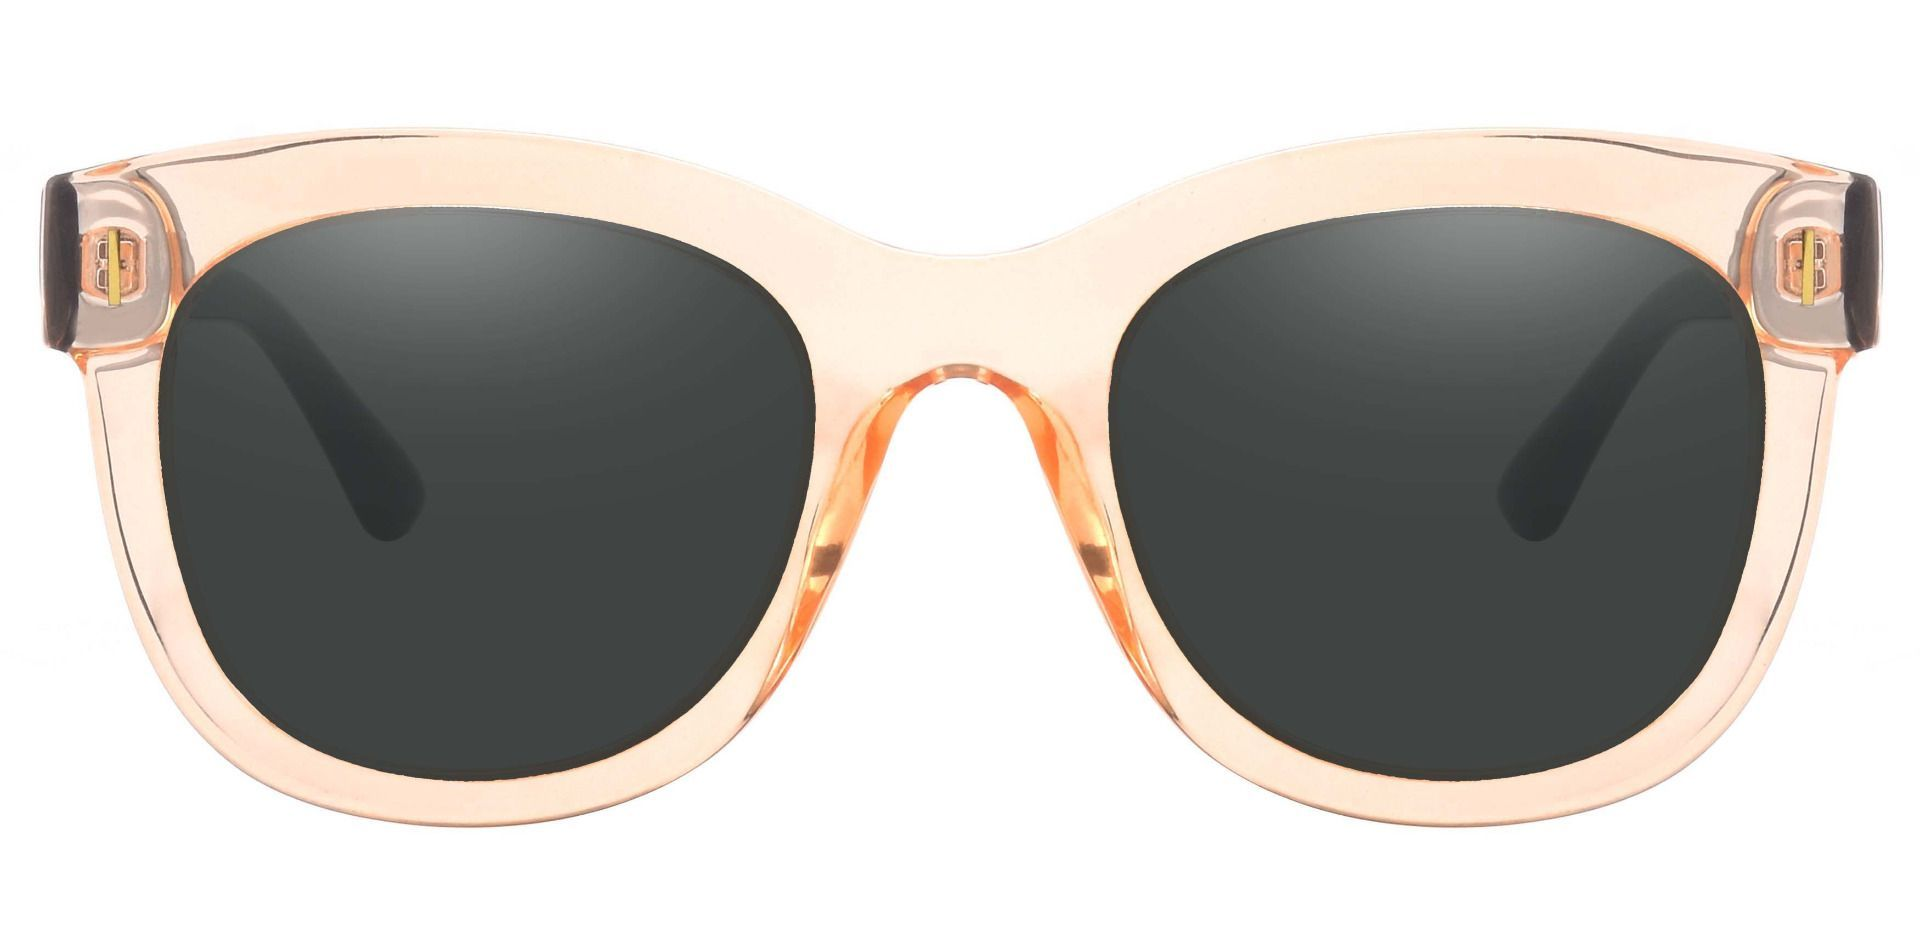 Saratoga Square Reading Sunglasses - Brown Frame With Gray Lenses